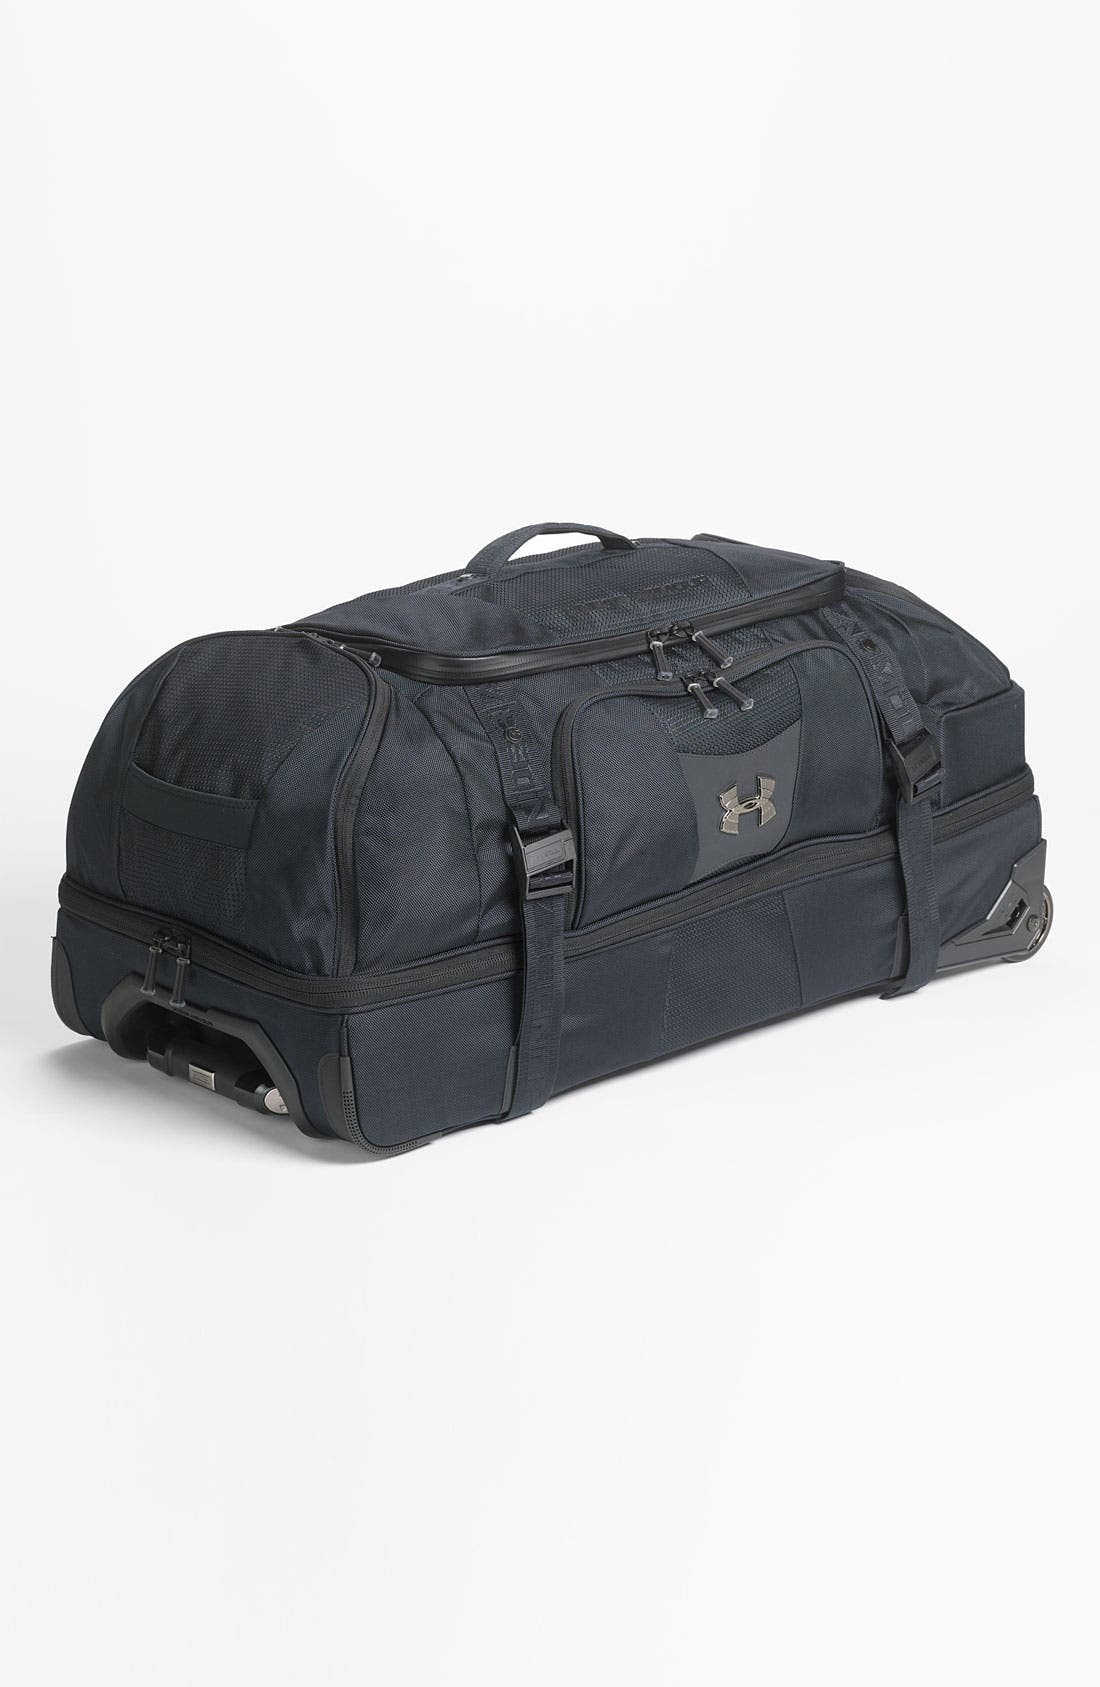 Alternate Image 1 Selected - Under Armour 'Elite' Rolling Duffel Bag